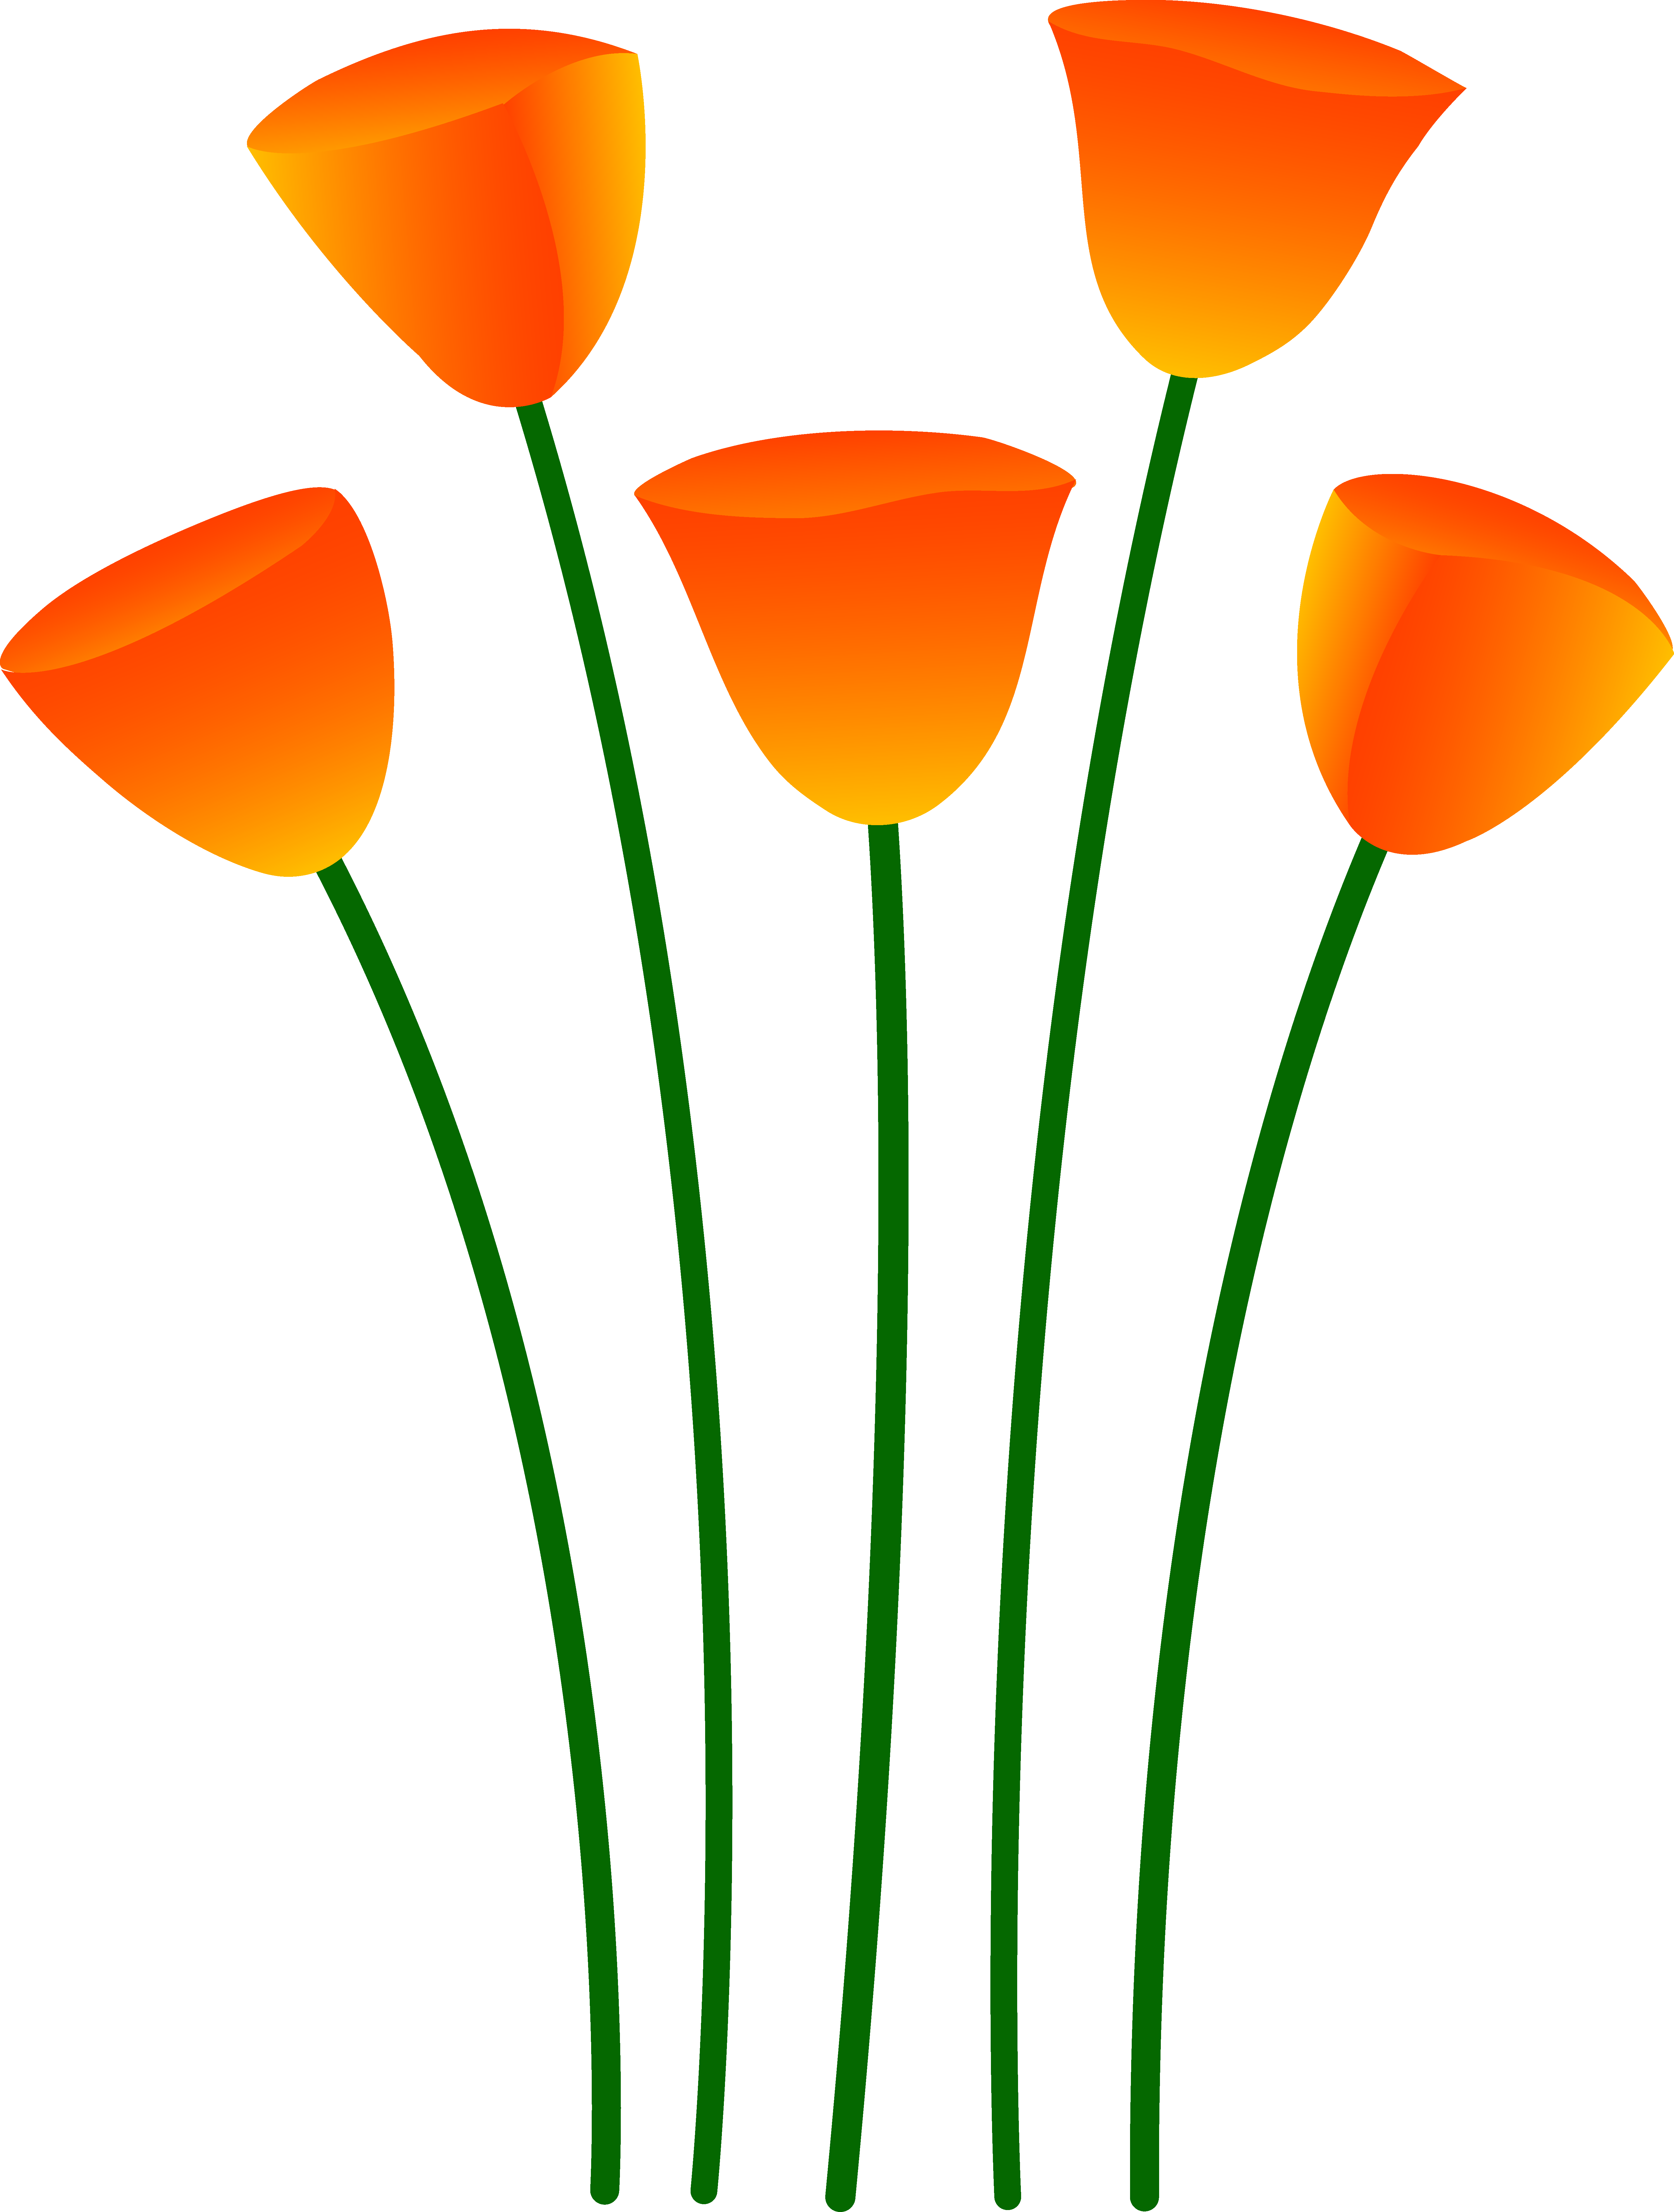 Poppy clipart 5 flower. Orange apple free collection